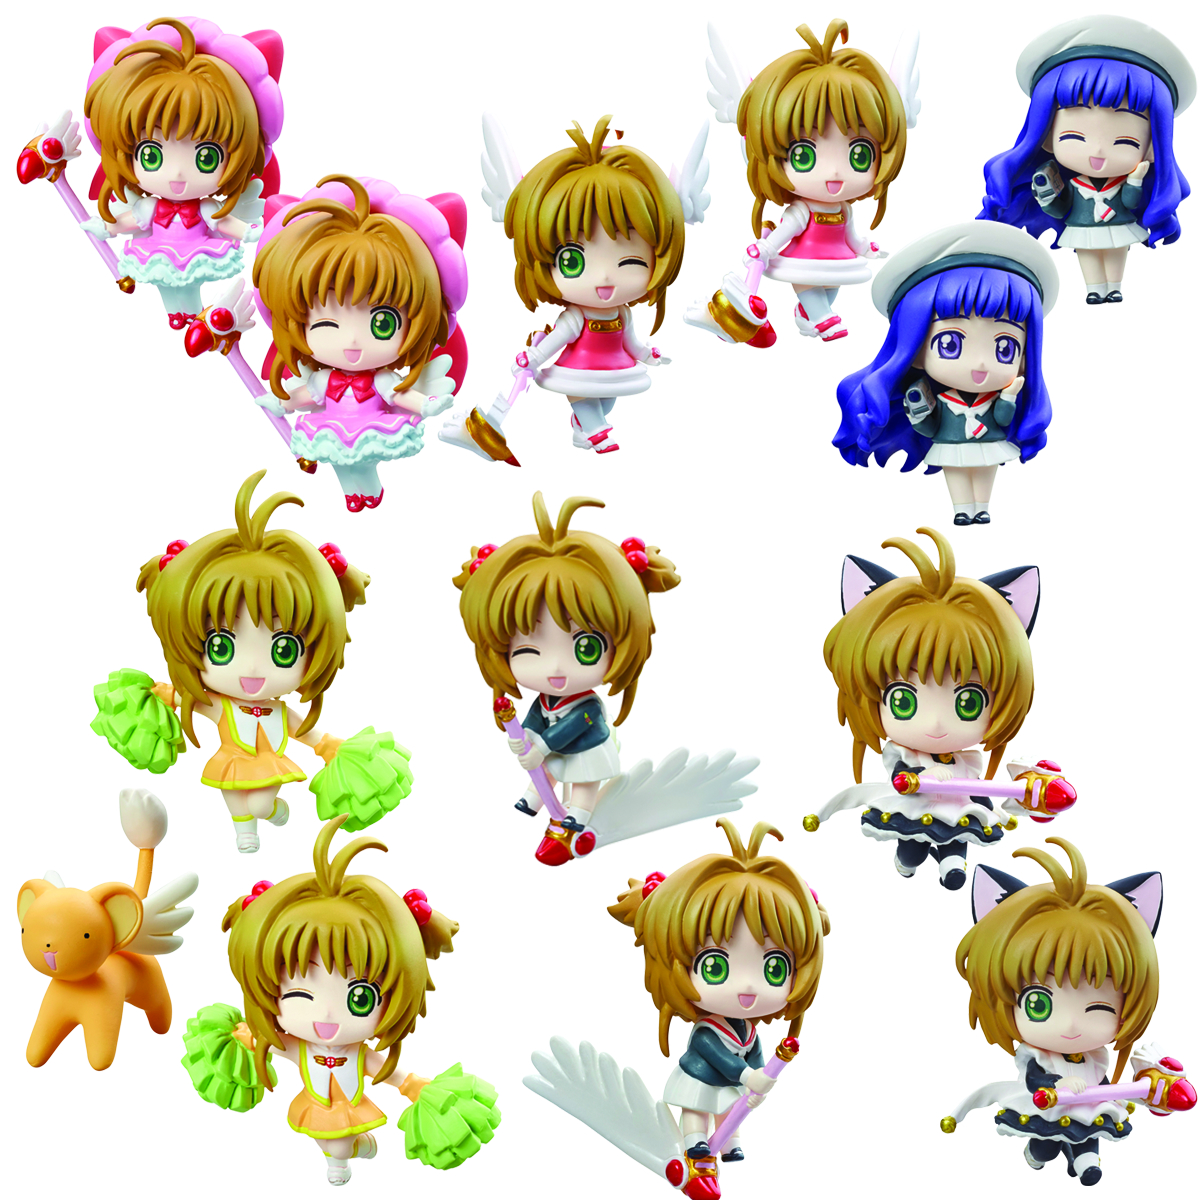 CARDCAPTOR SAKURA PS PETIT CHARA LAND 6PC RELEASE THE SEAL (